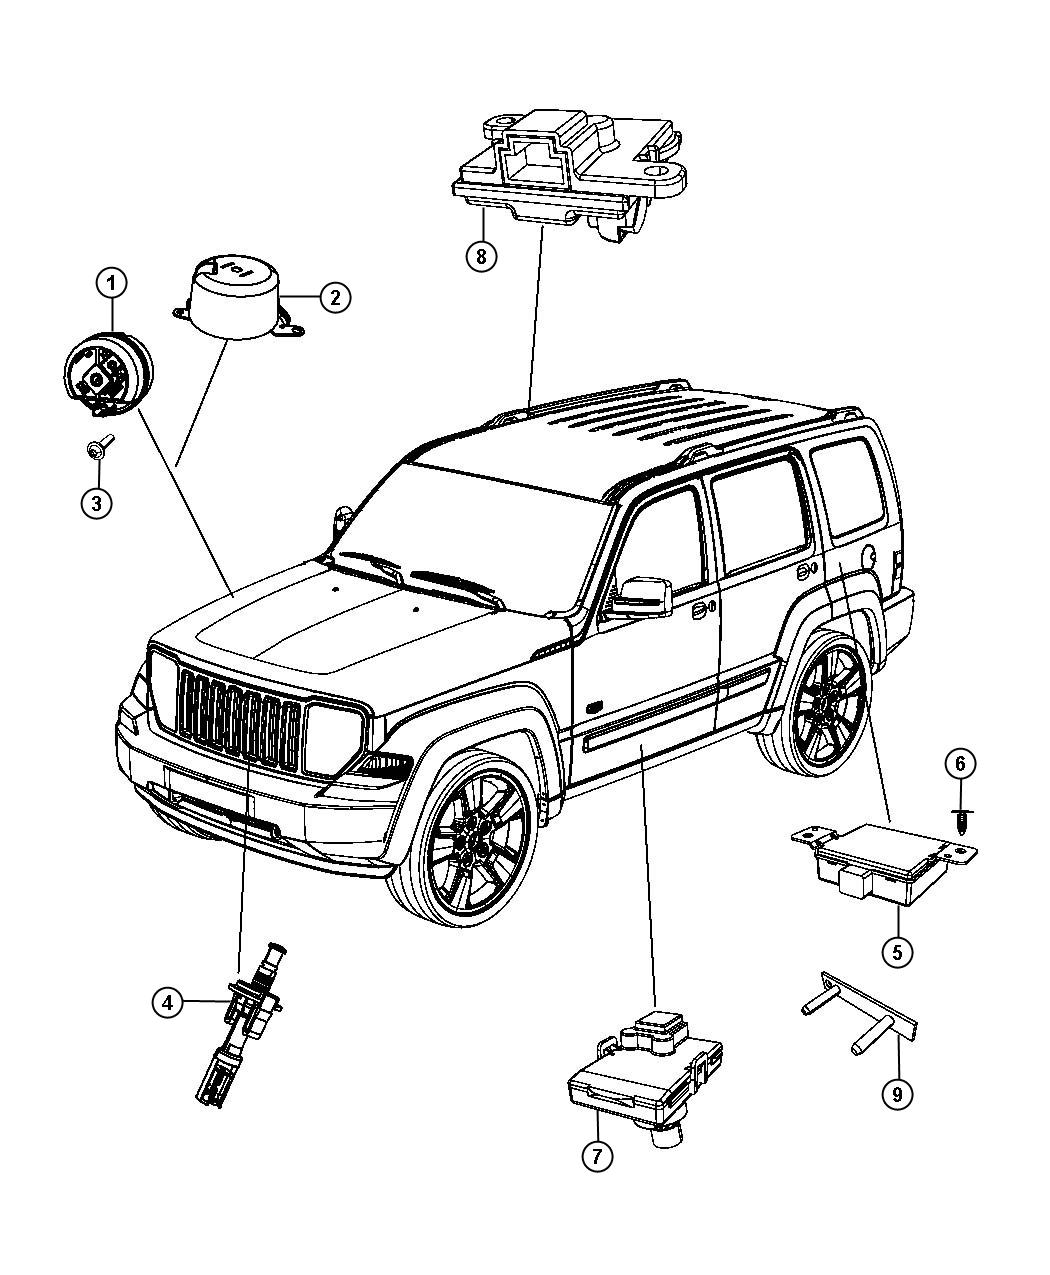 Service manual [2008 Jeep Liberty How To Disable Security